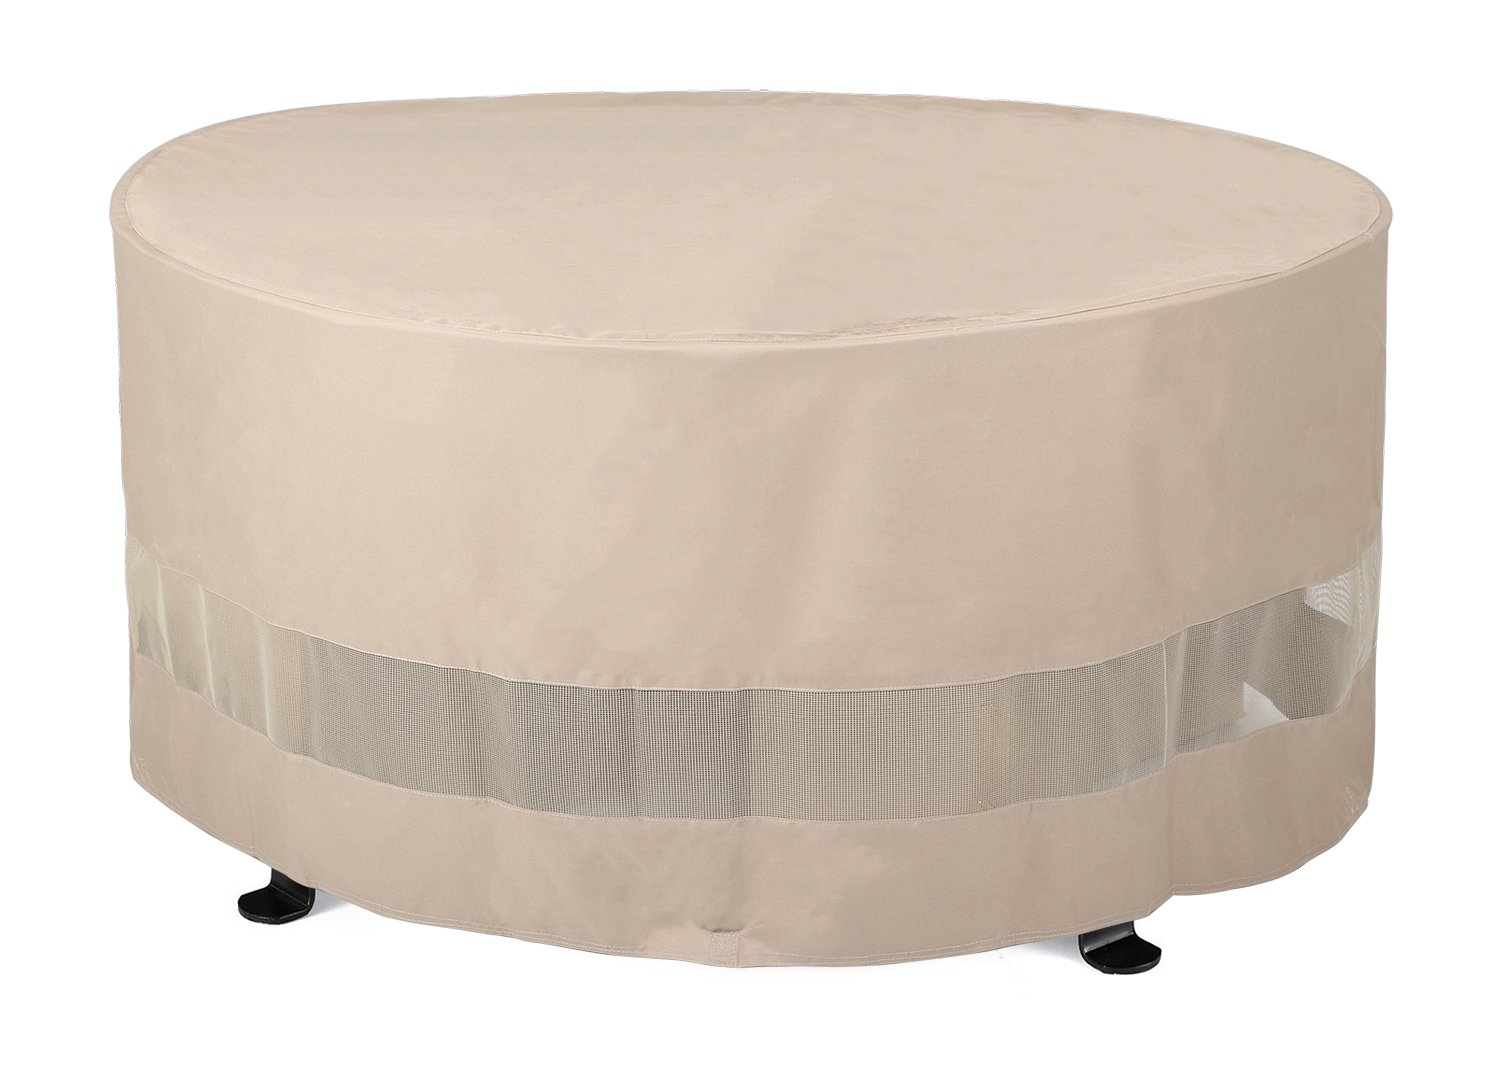 SunPatio Outdoor Round Fire Pit or Ottoman Cover,50''Diax24''H,Extremely Lightweight,Water Resistant,Eco-Friendly,Helpful Air Vents by SunPatio